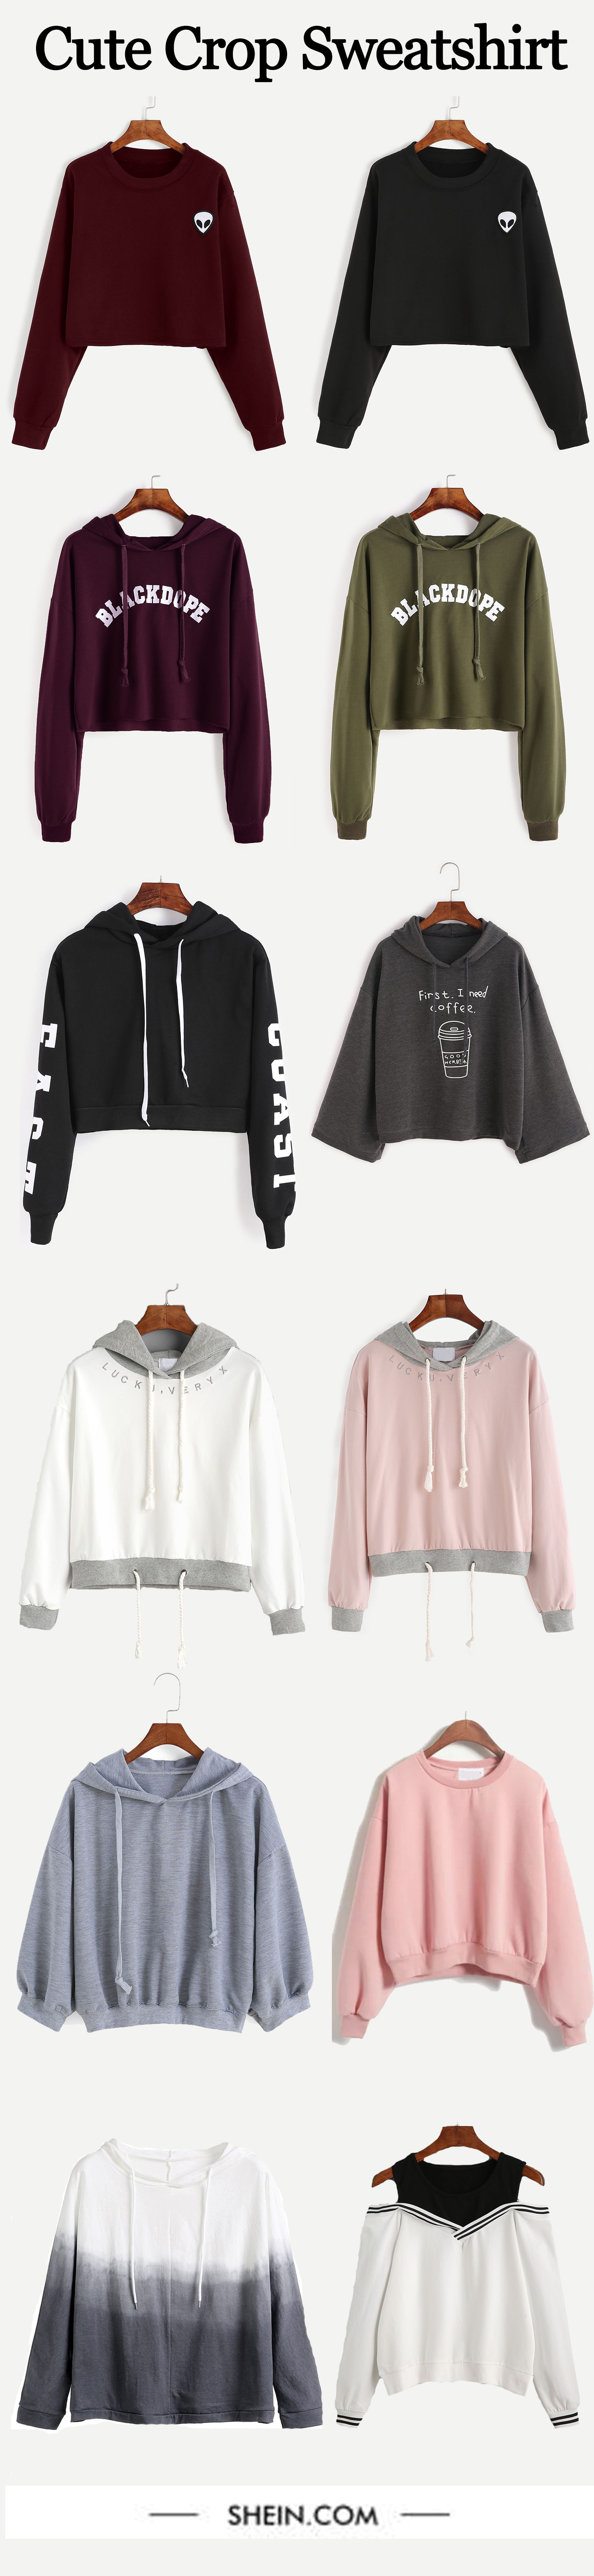 Cute Crop Fall Winter Sweatshirt Collection From Shein Com Up To 80 Off Cool Outfits Clothes Cute Outfits [ 6500 x 1500 Pixel ]